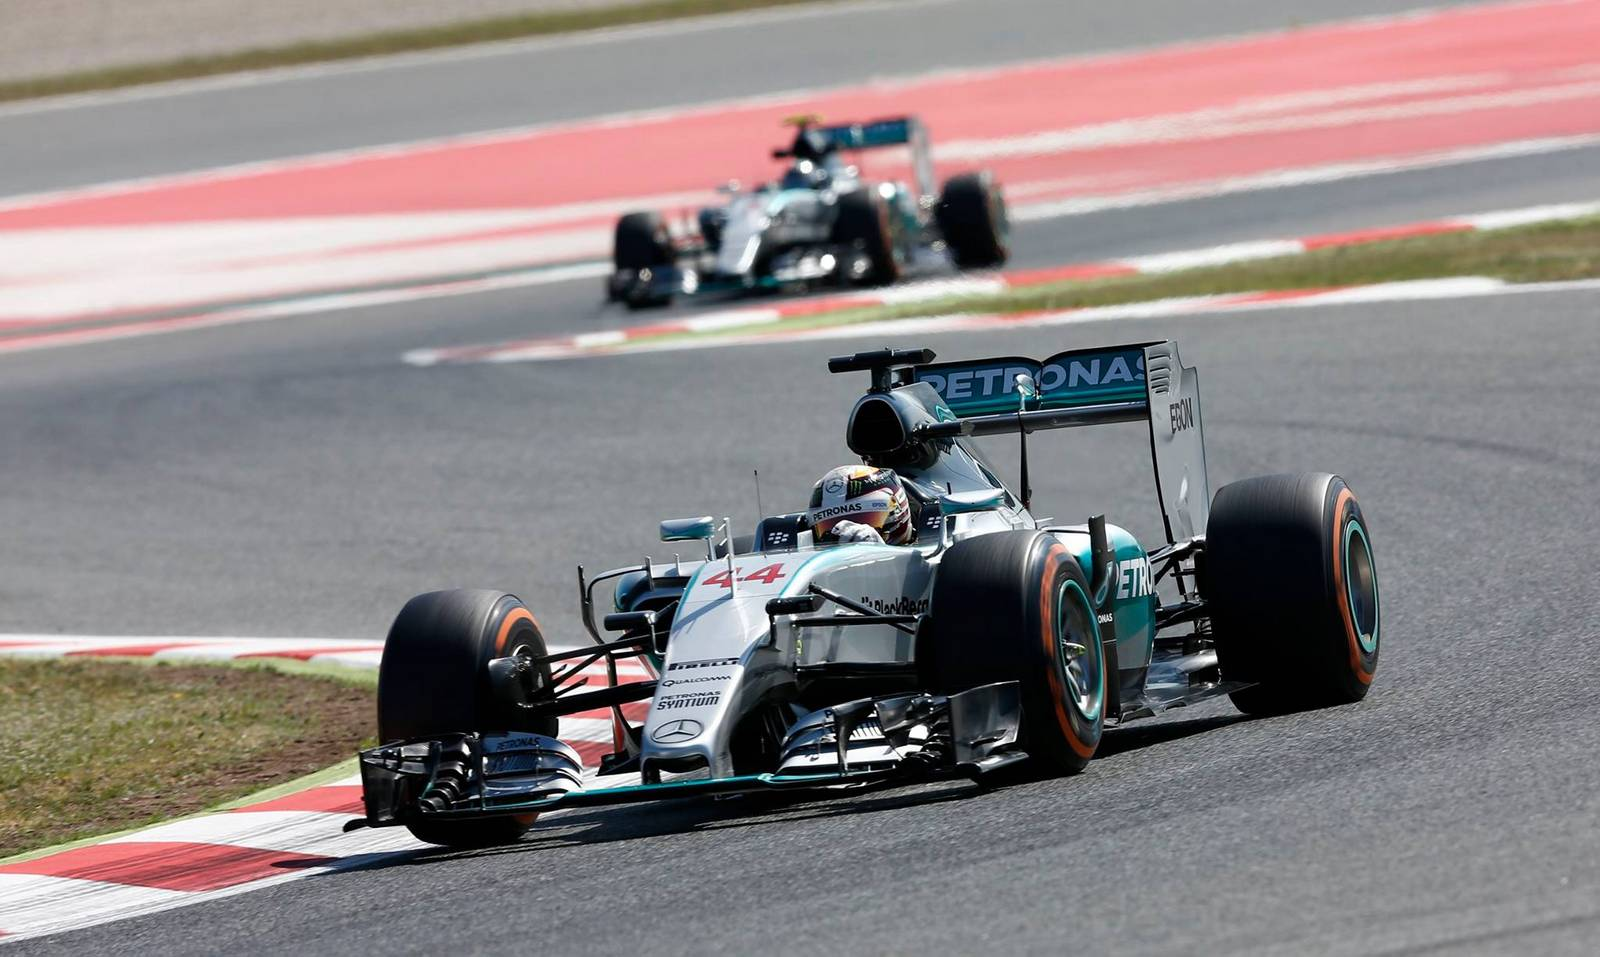 formula 1 rosberg wins spanish gp as hamilton makes it 1 2 for mercedes gtspirit. Black Bedroom Furniture Sets. Home Design Ideas